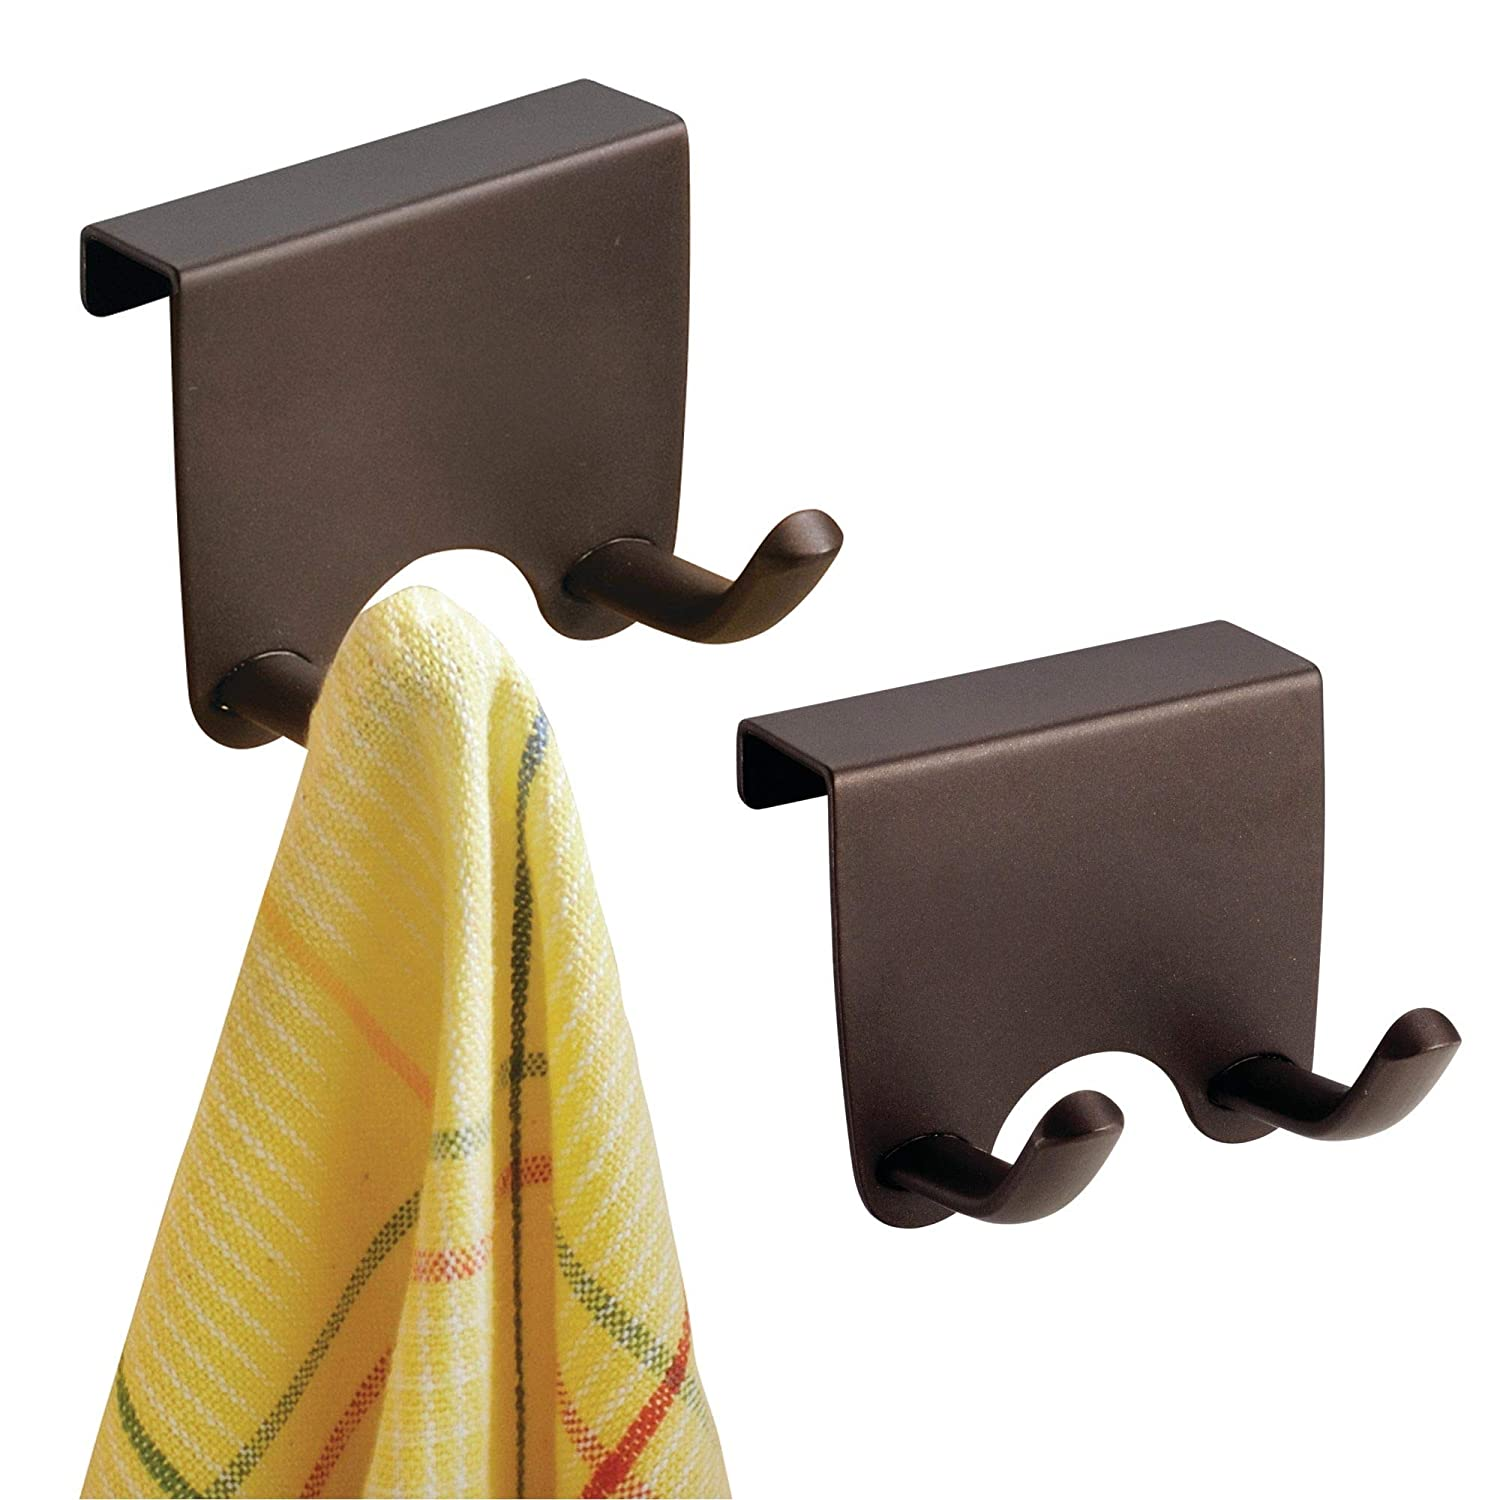 mDesign Over-the-Cabinet Kitchen Storage Hooks for Dish Towels or Pot Holders - Pack of 2, Bronze MetroDecor 00188MDK